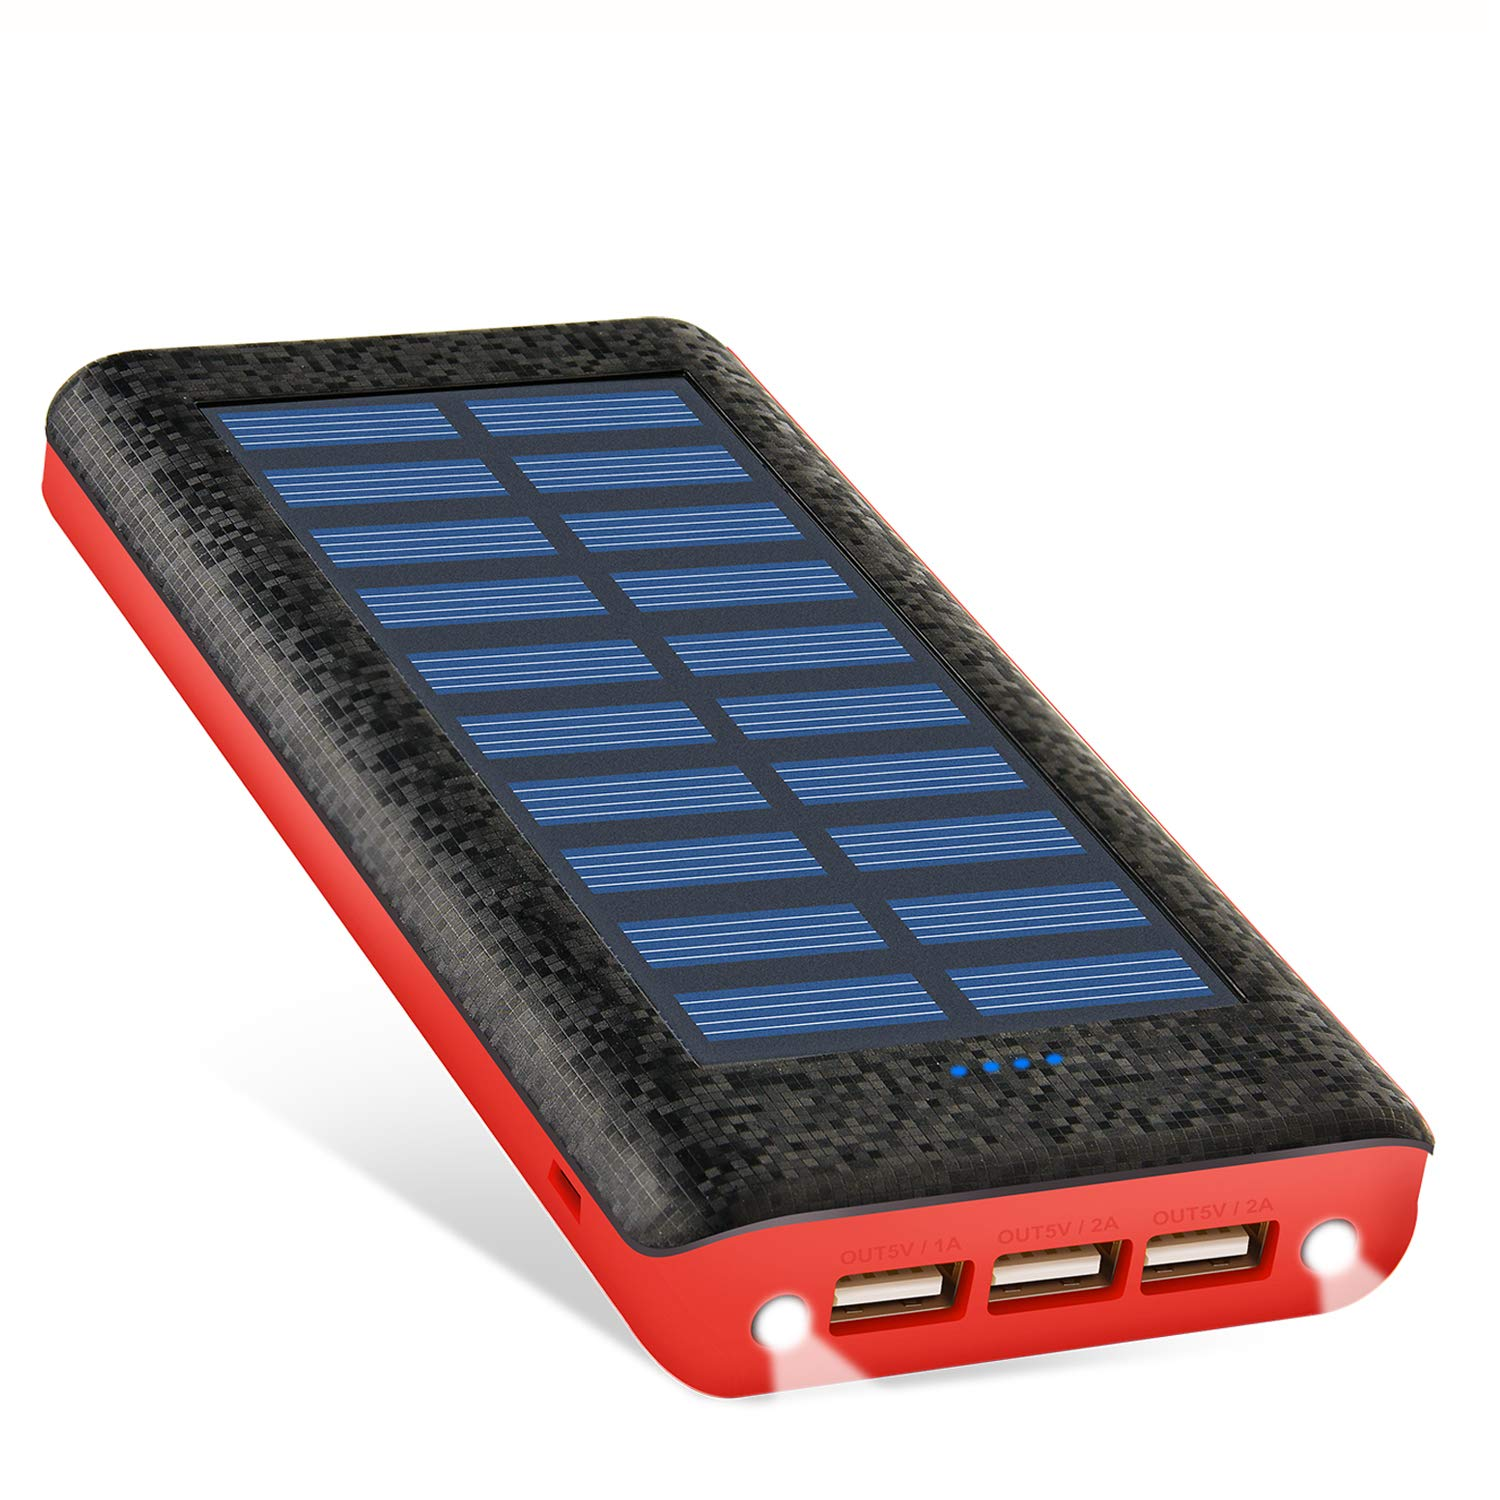 Solar Charger Portable Charger Power Bank 24000mah Huge Capacity 3 USB Output Ports Backup Battery Packs Compatible with Tablet HTC Android and Other Smart Devices